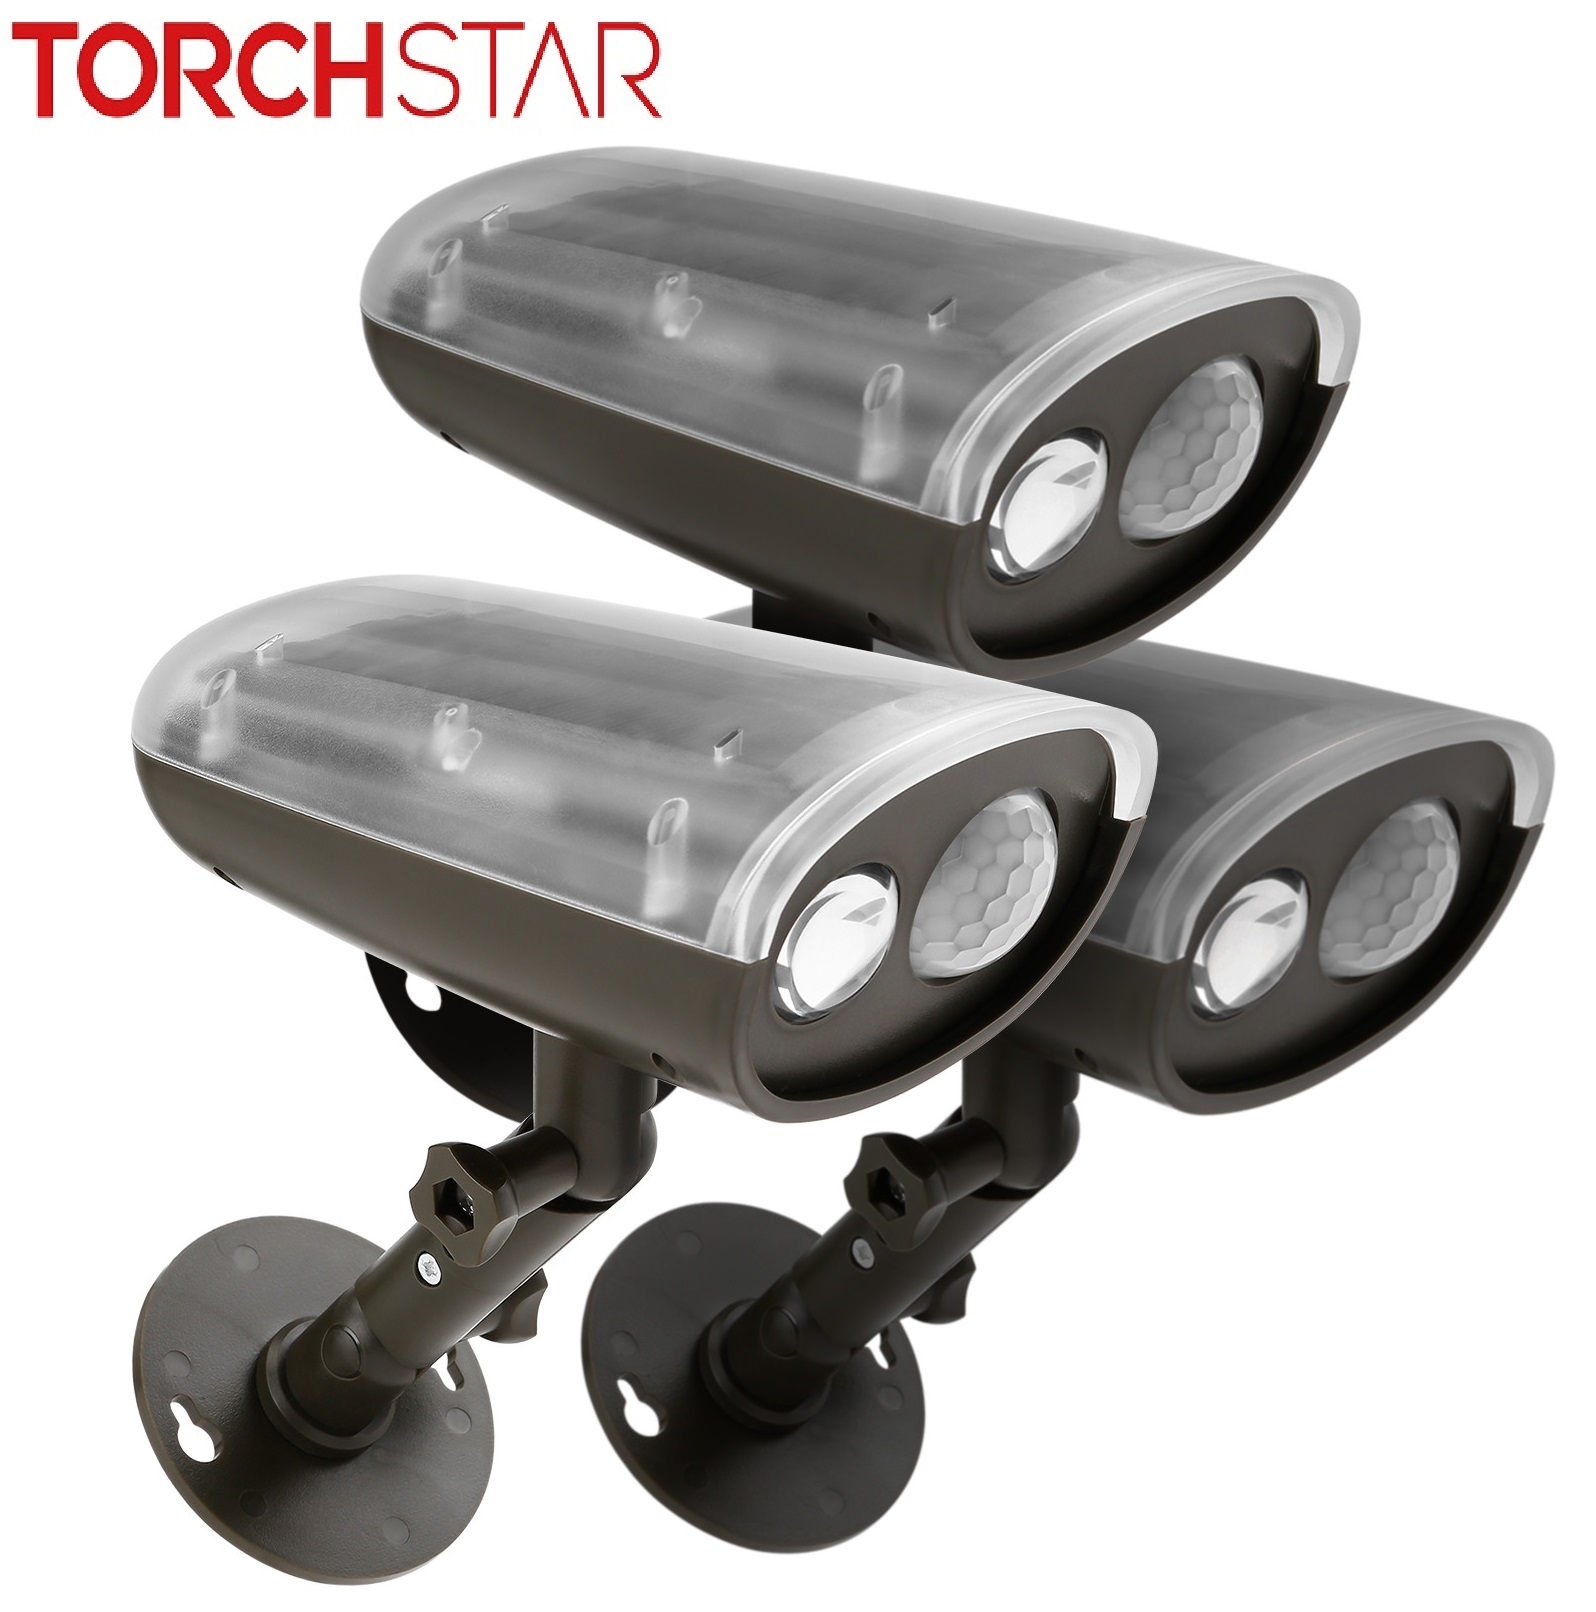 TORCHSTAR 3 Pack LED Solar Powered Outdoor Security Light with Motion Sensor, Waterproof Wireless Solar Wall Lights